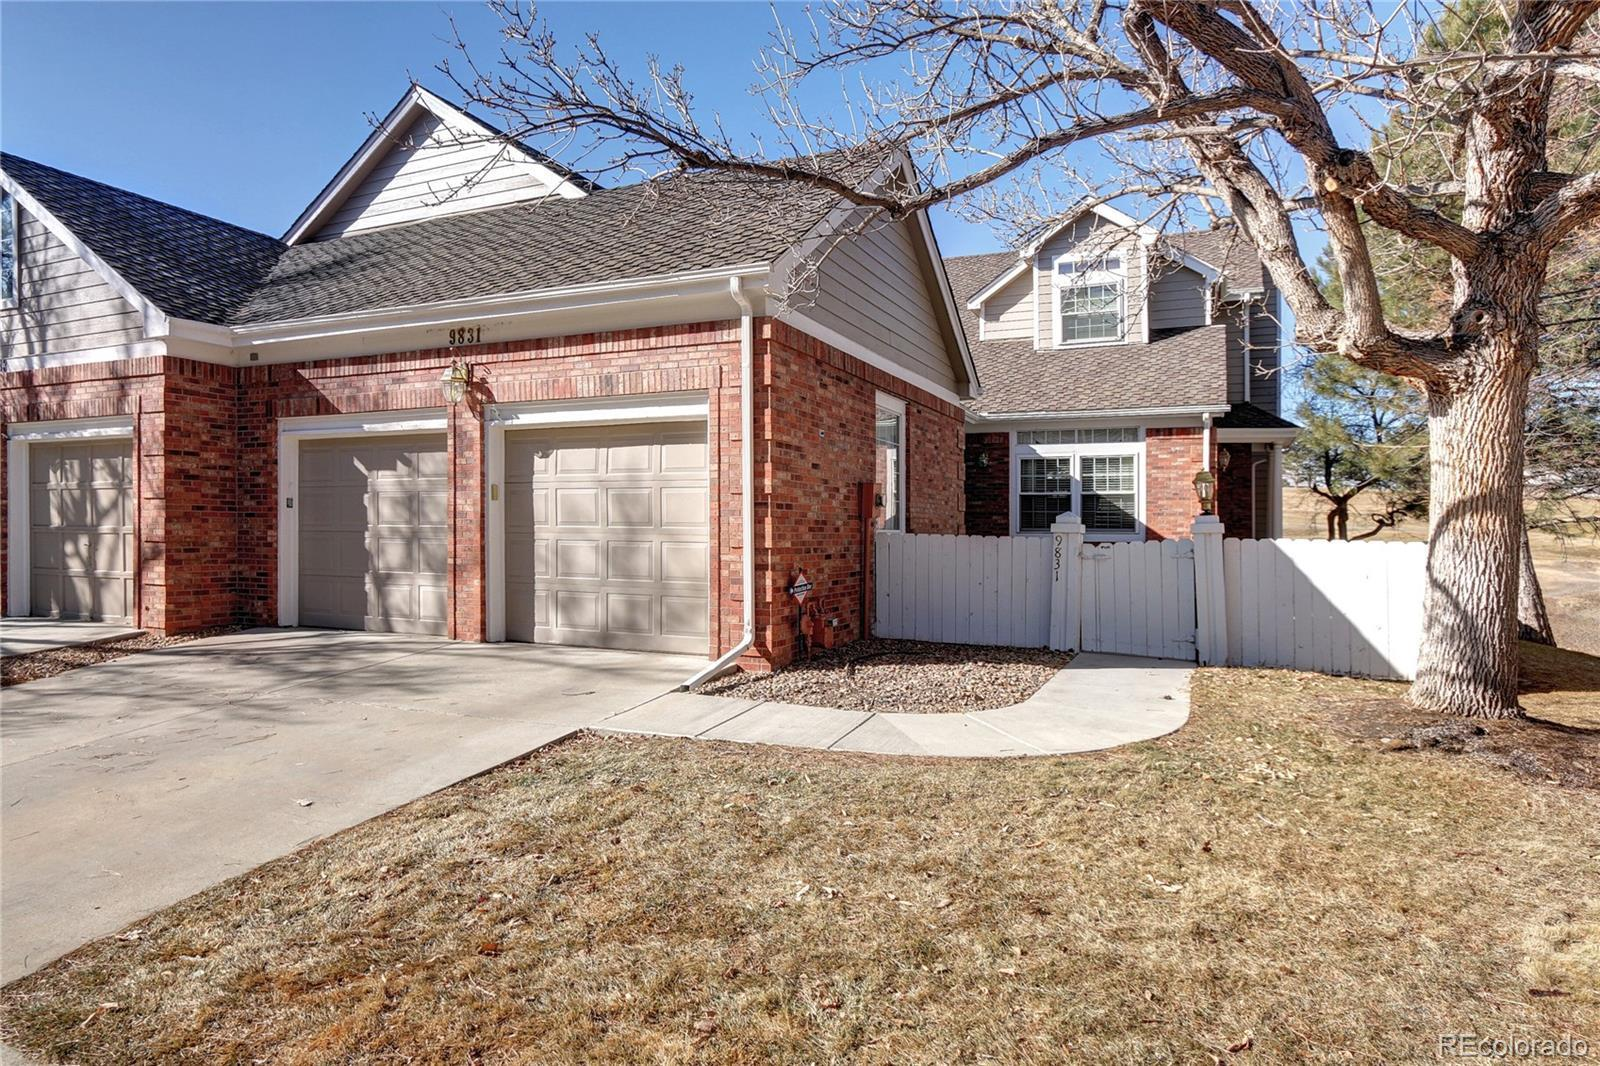 9831 Greensview Circle, Lone Tree, CO 80124 - #: 2903270